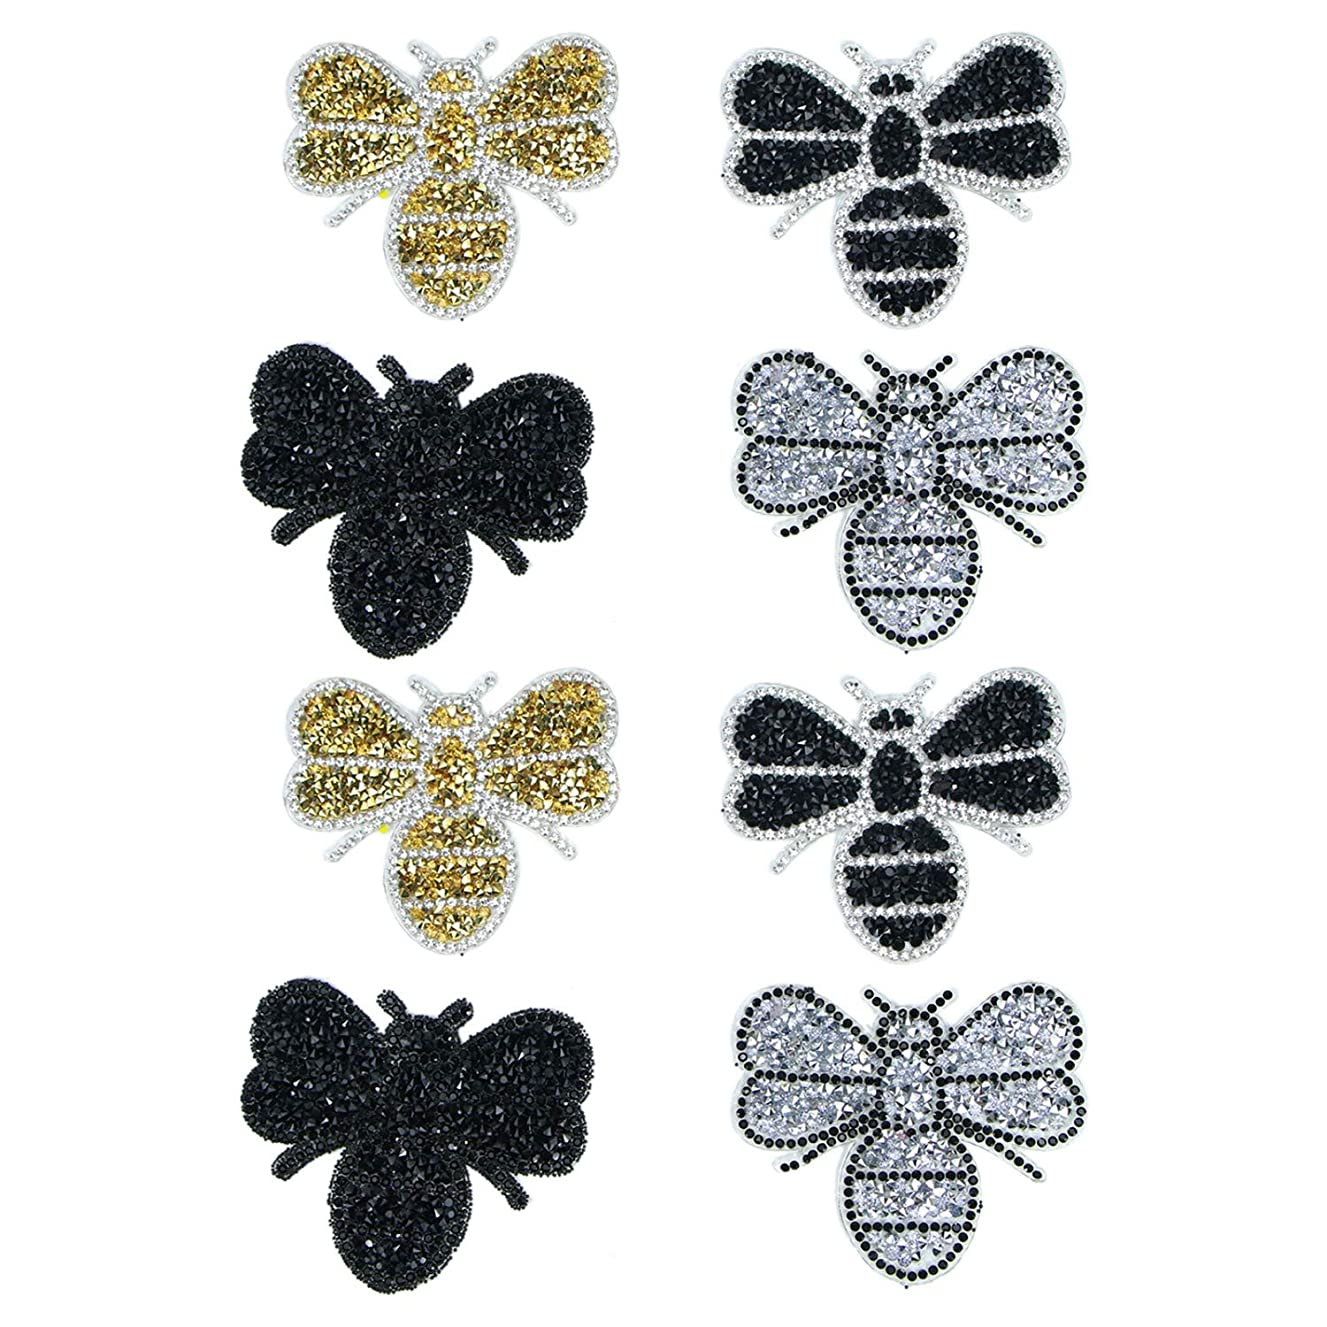 Monrocco 8pcs Animals Patches Bee Patches Crystals Iron on Rhinestone Appliques Patch